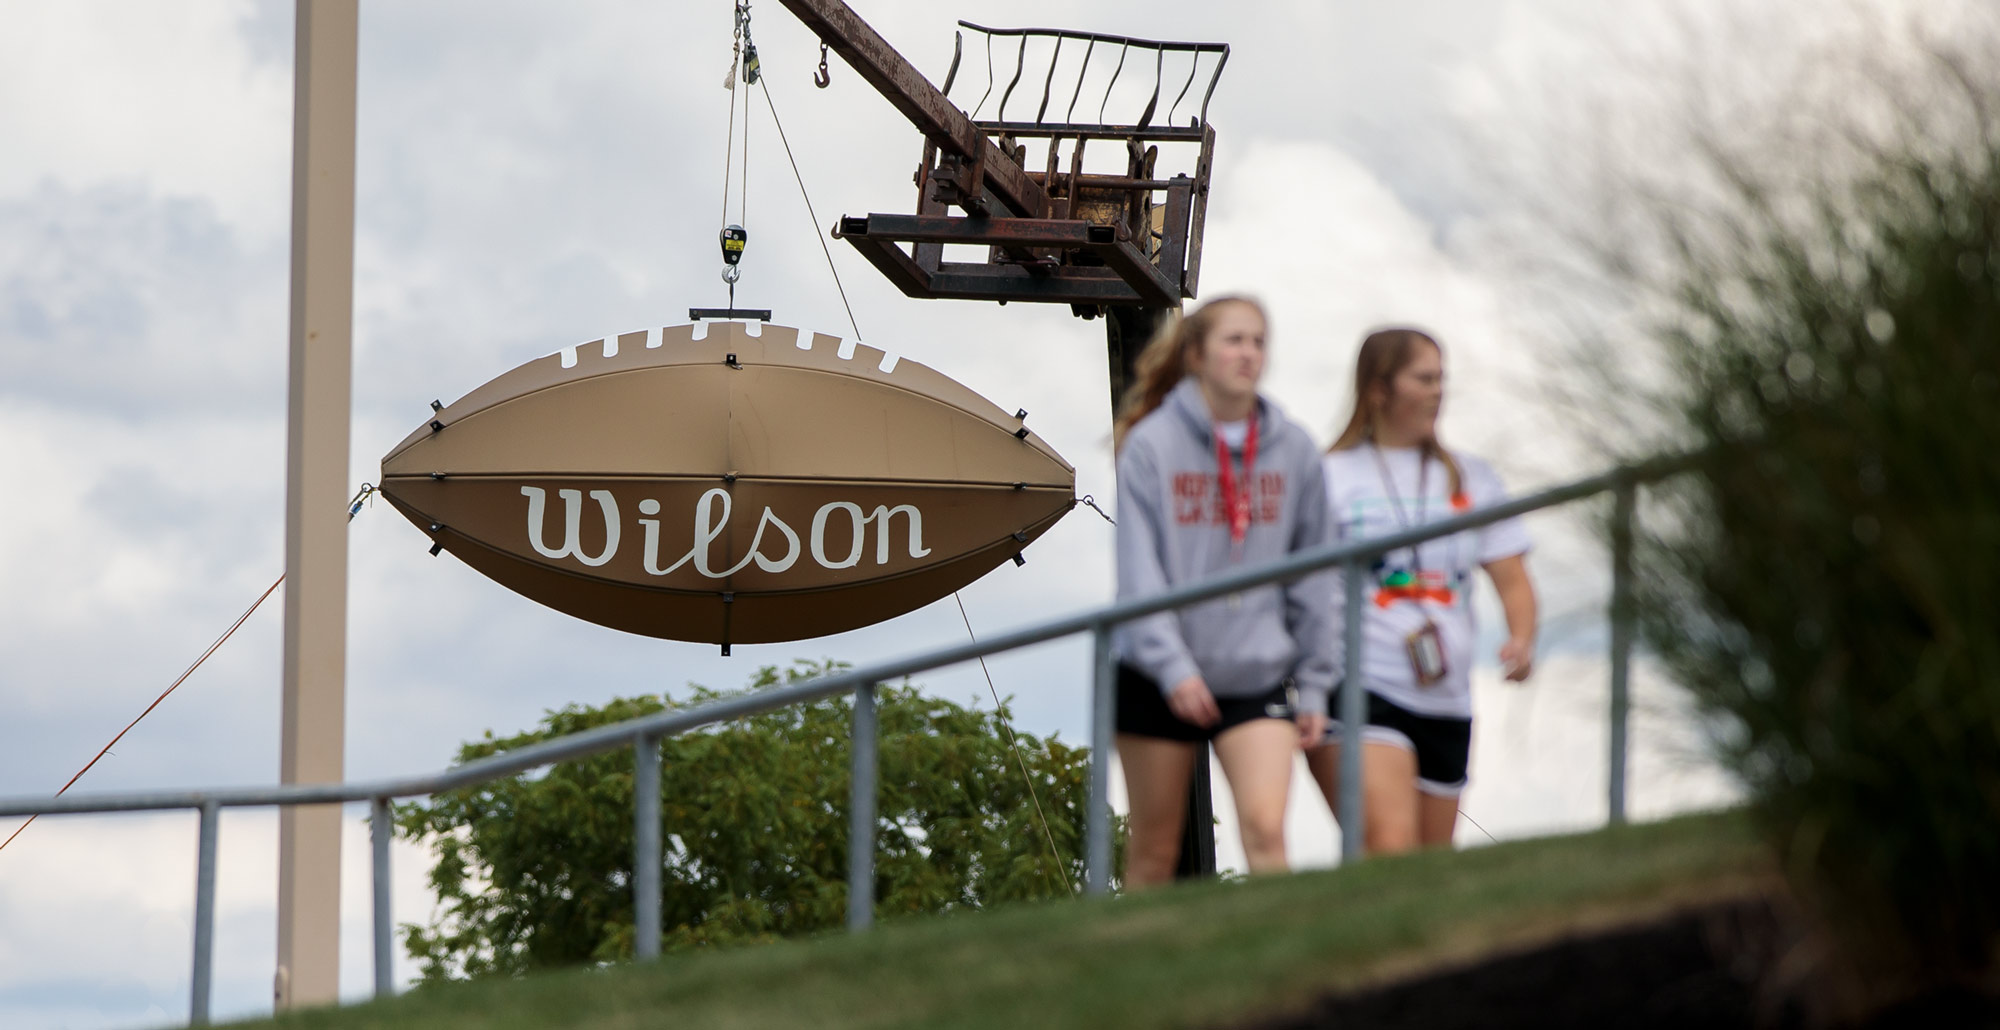 Students walk past the giant Wilson football outside of Dial-Roberson Stadium on the campus of Ohio Northern University.